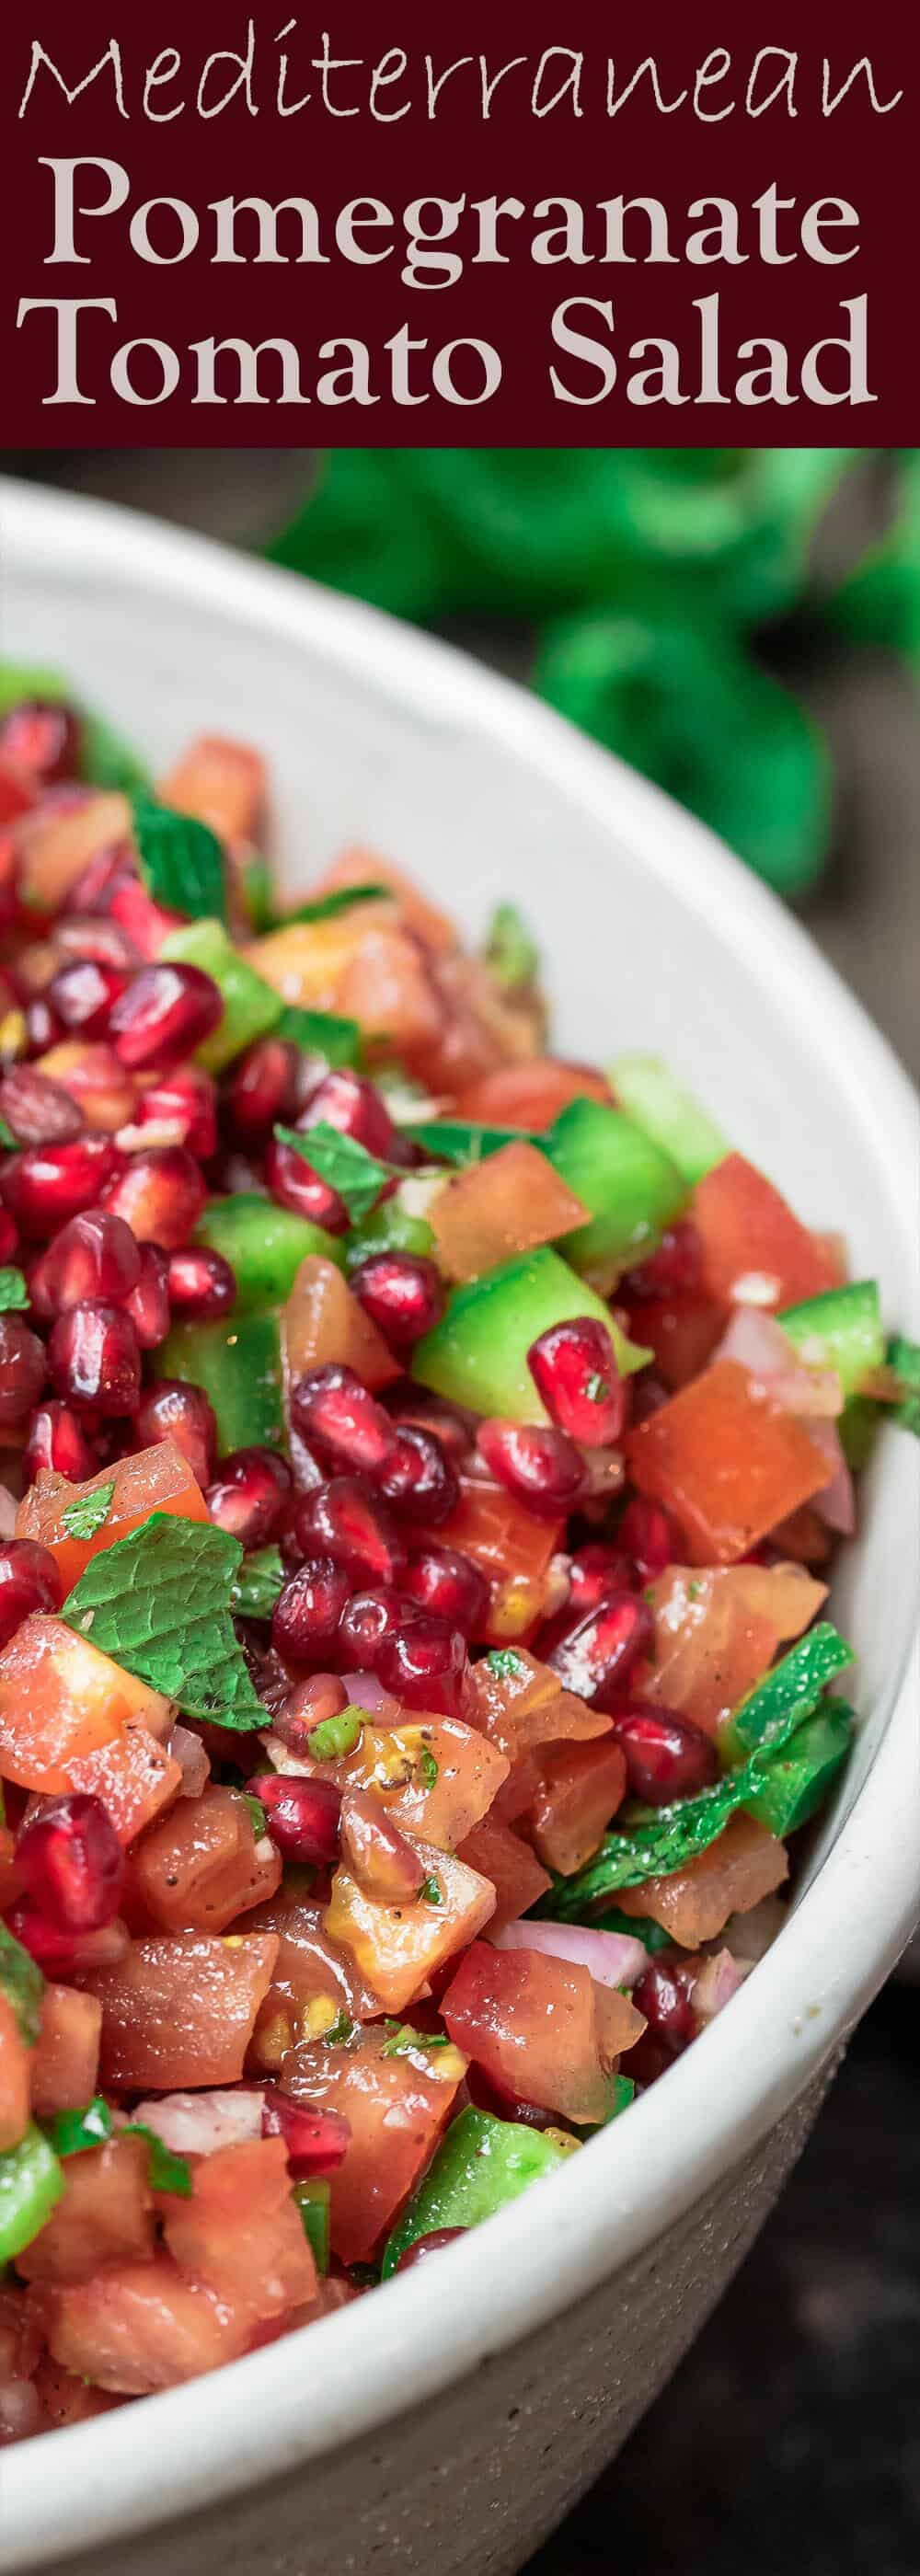 Mediterranean Pomegranate Tomato Salad | The Mediterranean Dish. This Mediterranean salad uses so few ingredients. So bright and flavor-packed! Tangy pomegranates and sunny sweet tomatoes are the perfect combination, with fresh mint and shallots! And the dressing is amazing! From TheMediterraneanDish.com